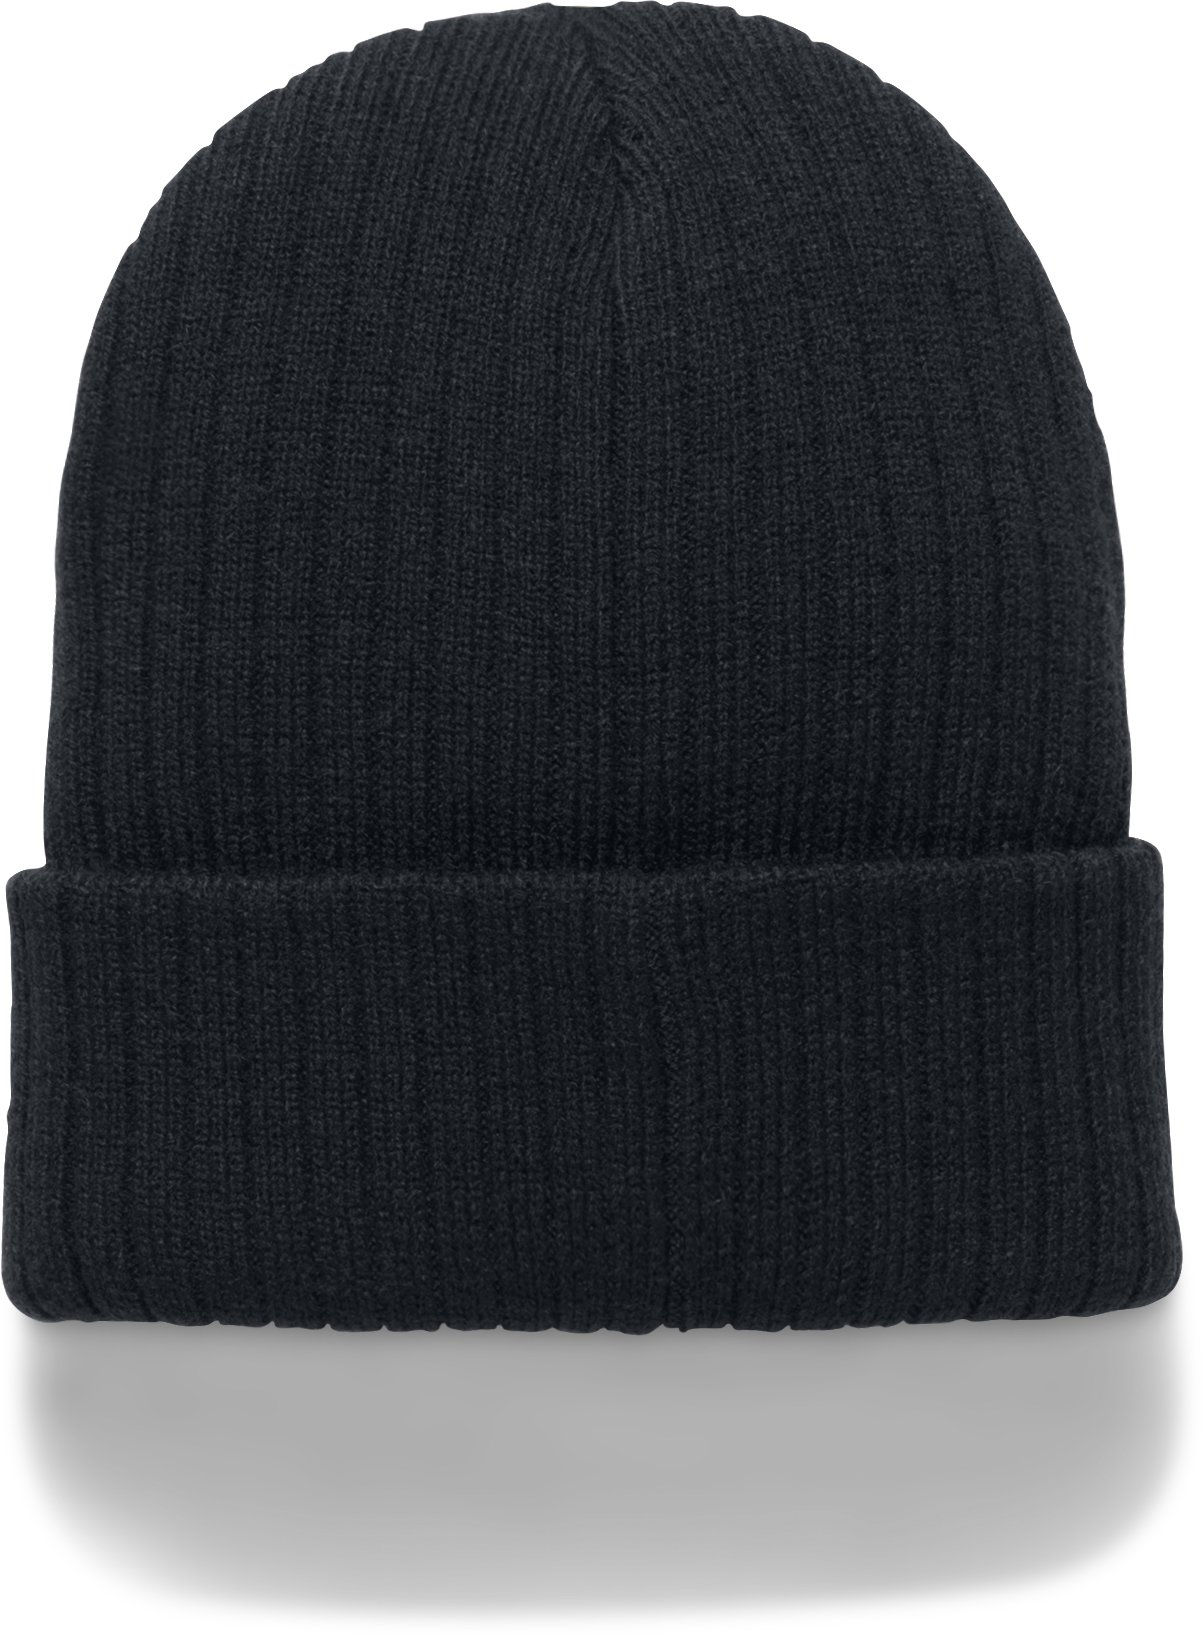 Boys' UA Truck Stop Beanie, Black , undefined